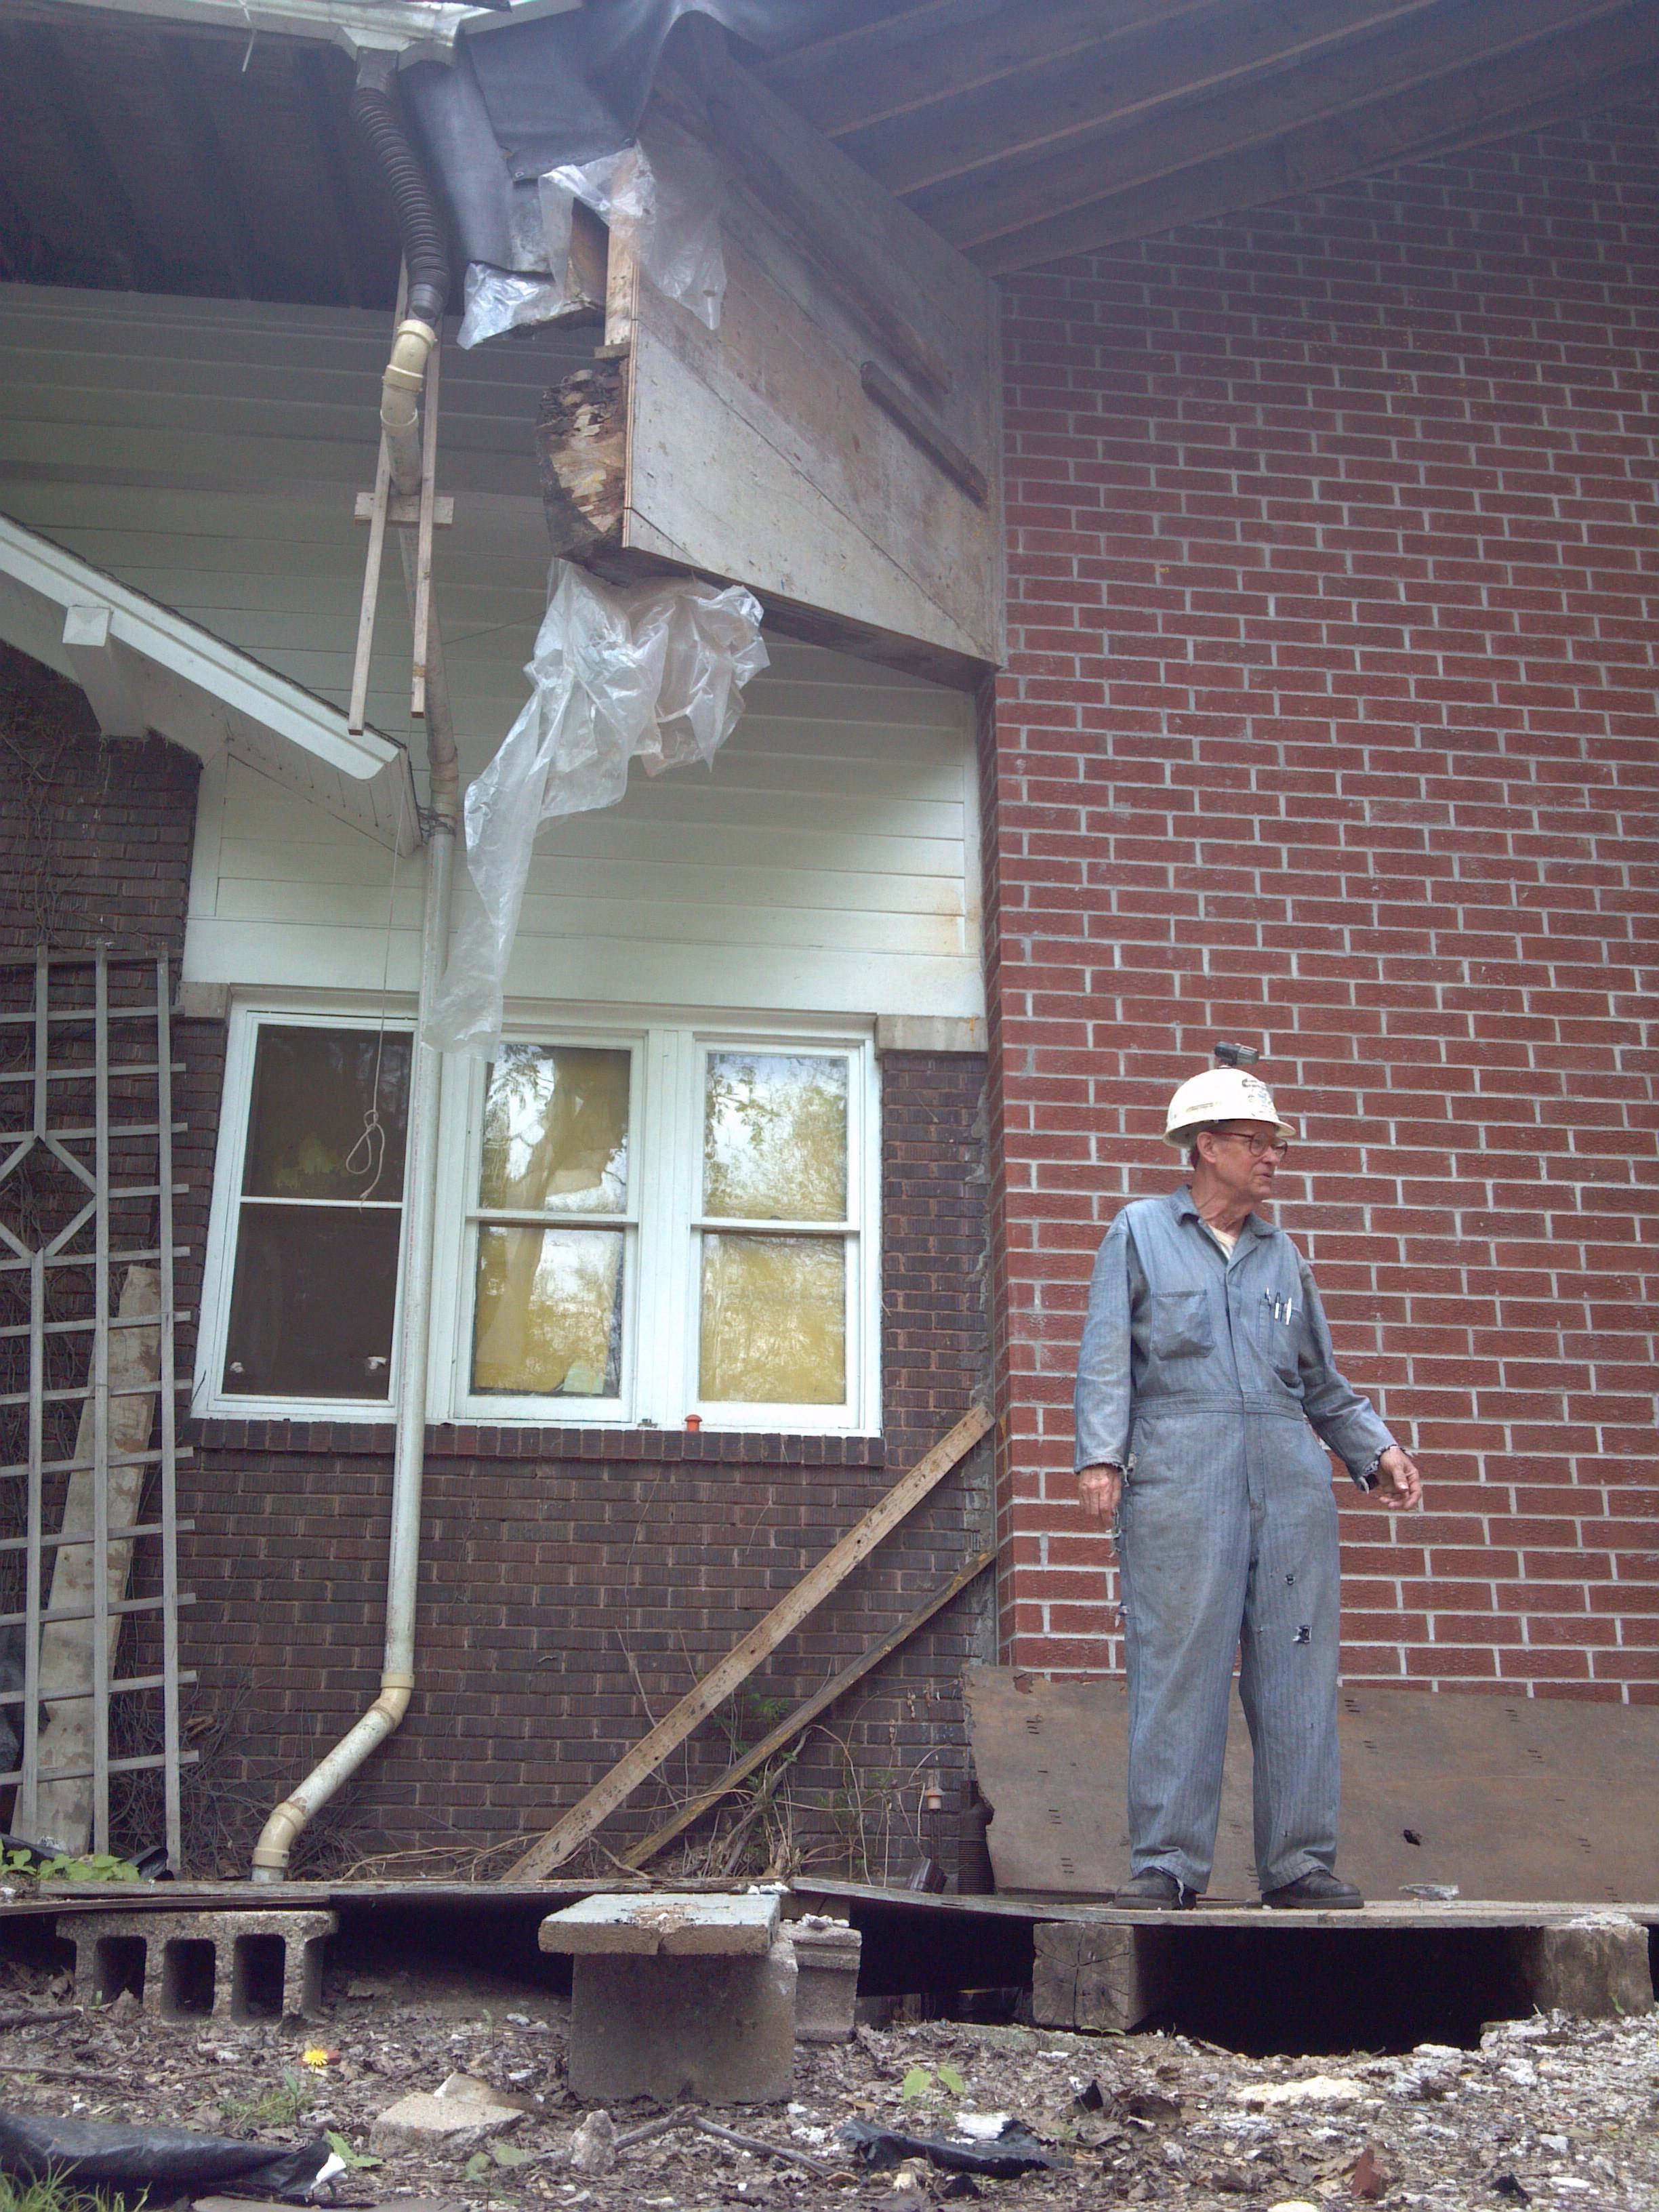 Cliff McIlvaine, who was sued by the city of St. Charles in an effort to get him to finish a project that he first pulled a permit for in 1975, stands in May 2013 on a landing between his original home to the left and new, super-insulated addition on the right, which he hopes to turn into a museum for his and his father's inventions, along with city memorabilia.